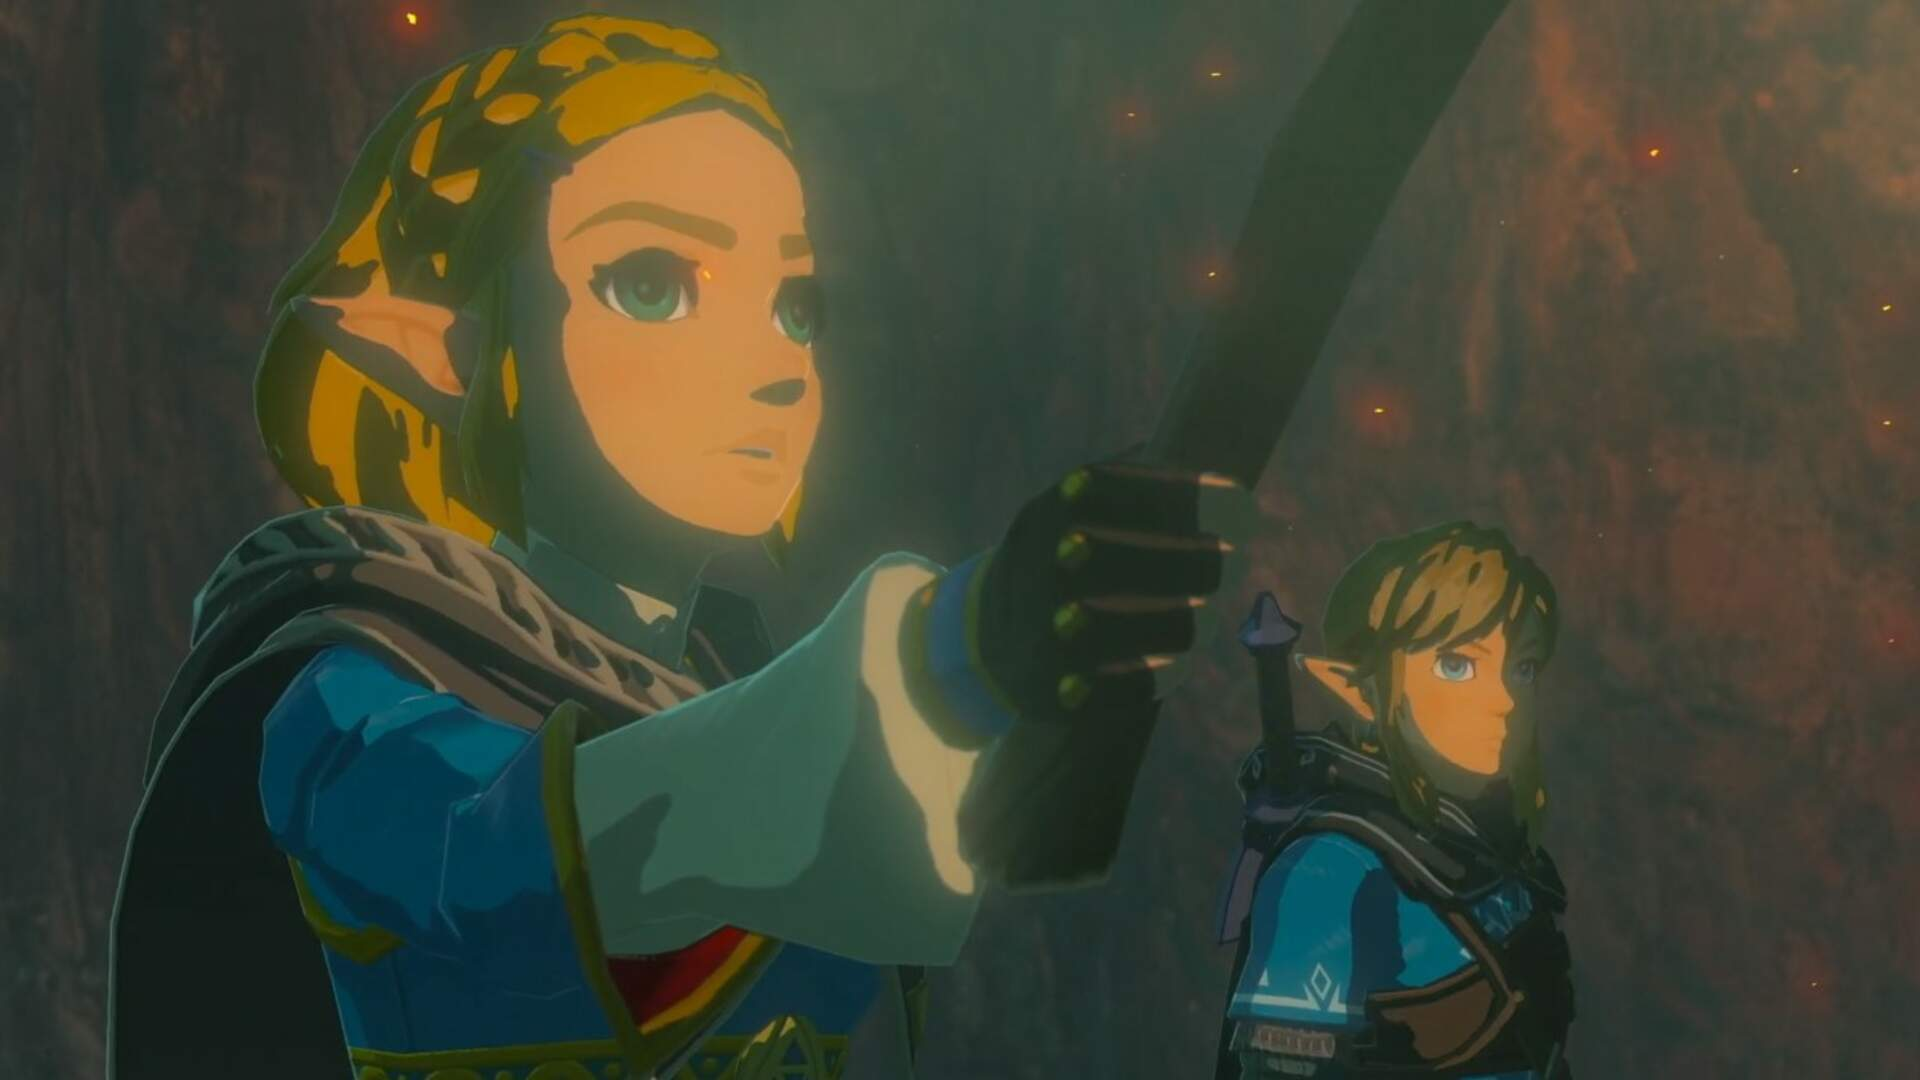 Younger Zelda: Breath of the Wild 2 Developers Have Been Inspired by Red Dead Redemption 2